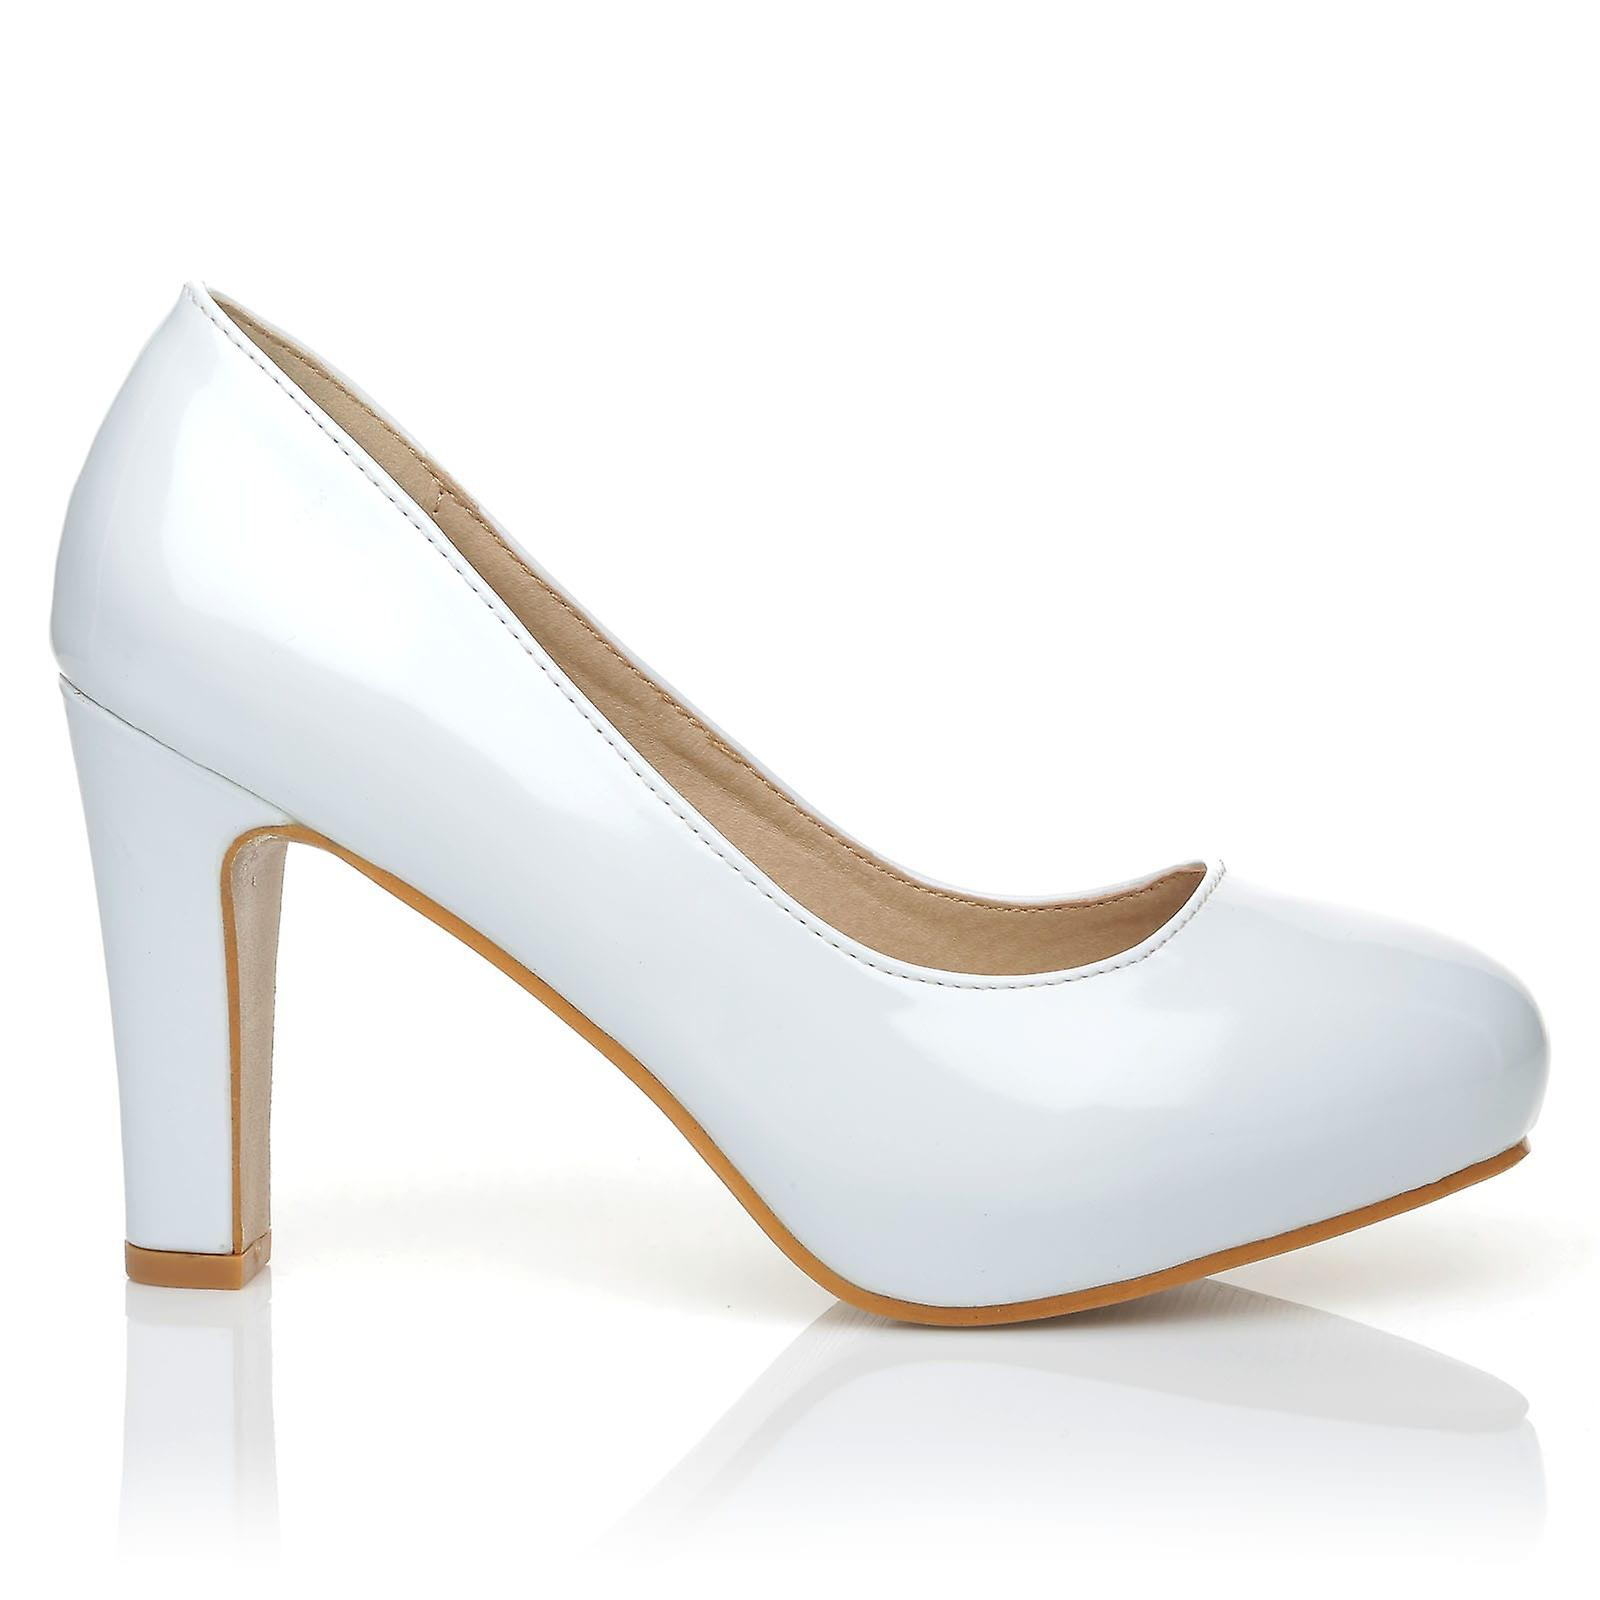 LOVE White Patent PU Leather Slim-Block High Heel Platform Court Shoes